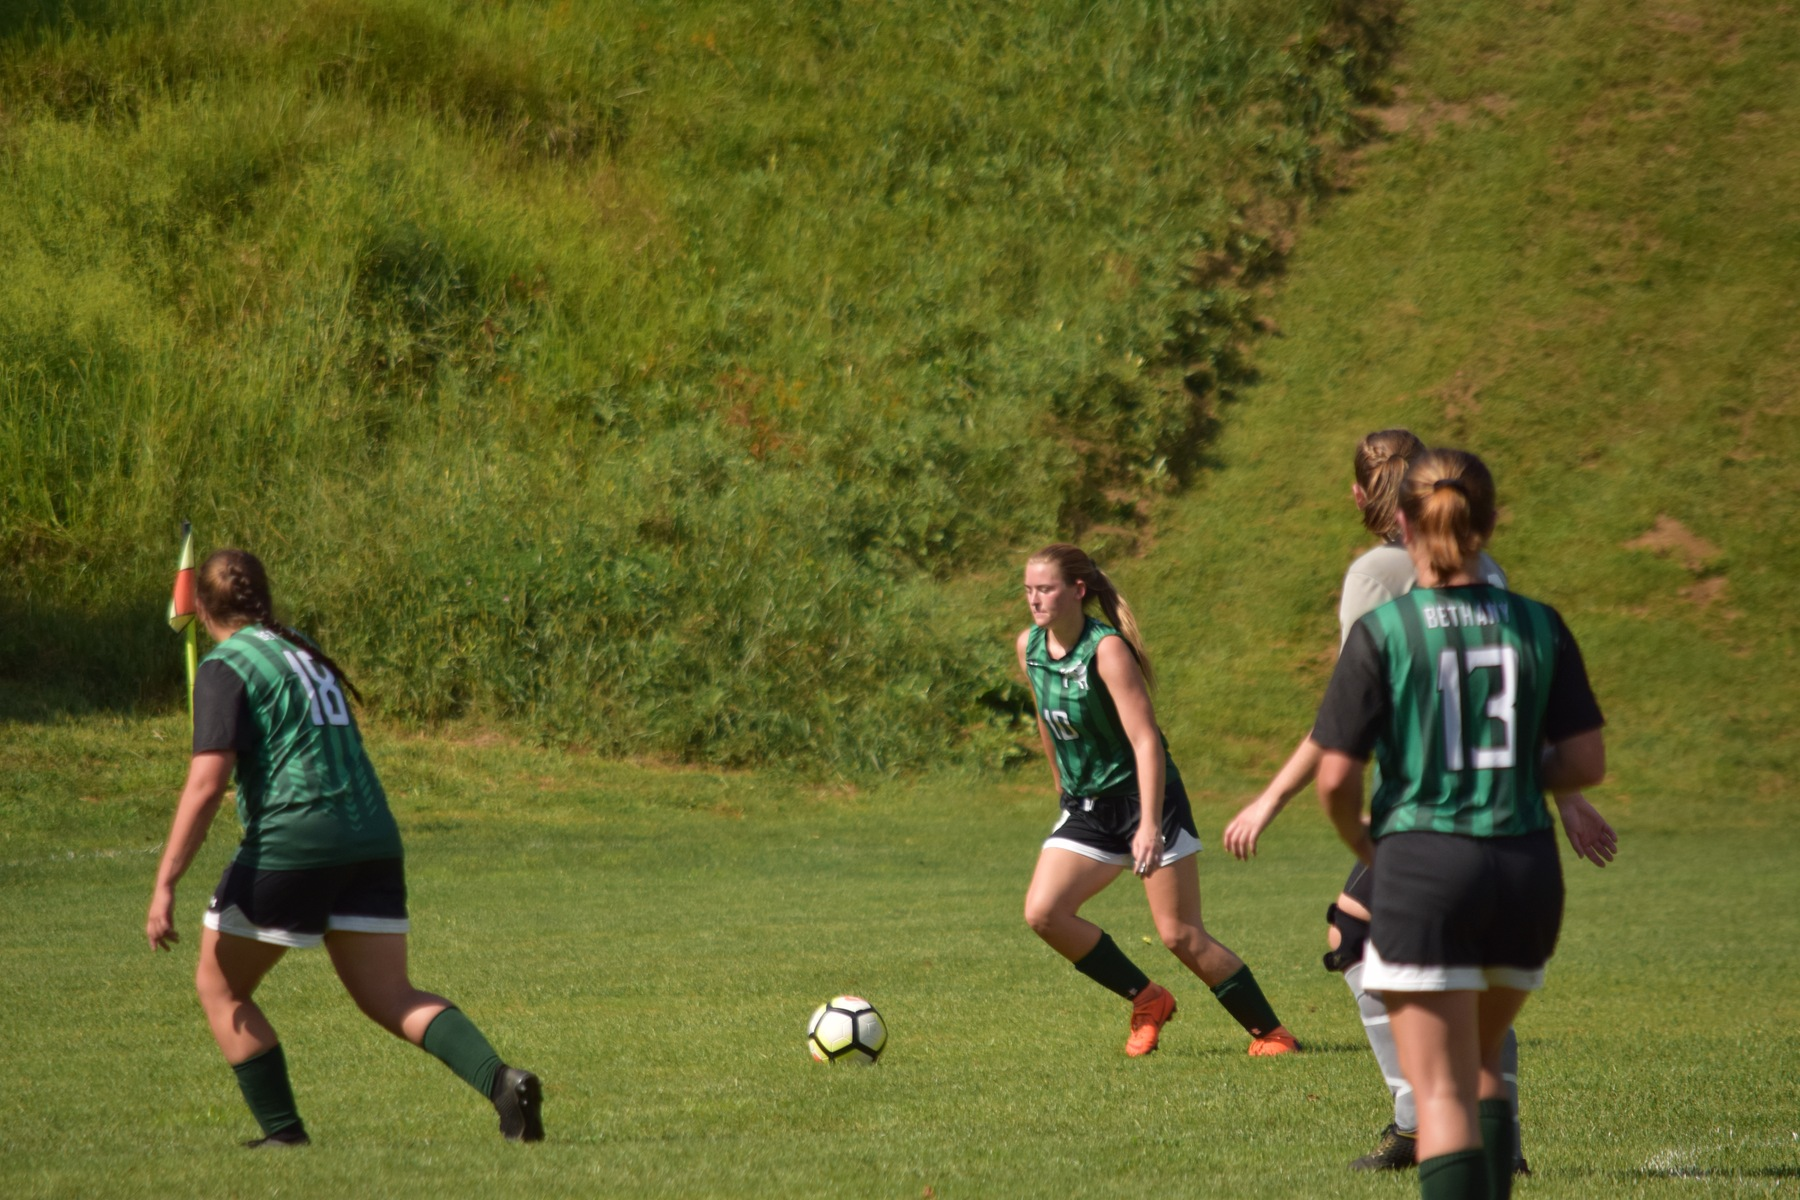 Bethany Blanked by Wooster College, 4-0